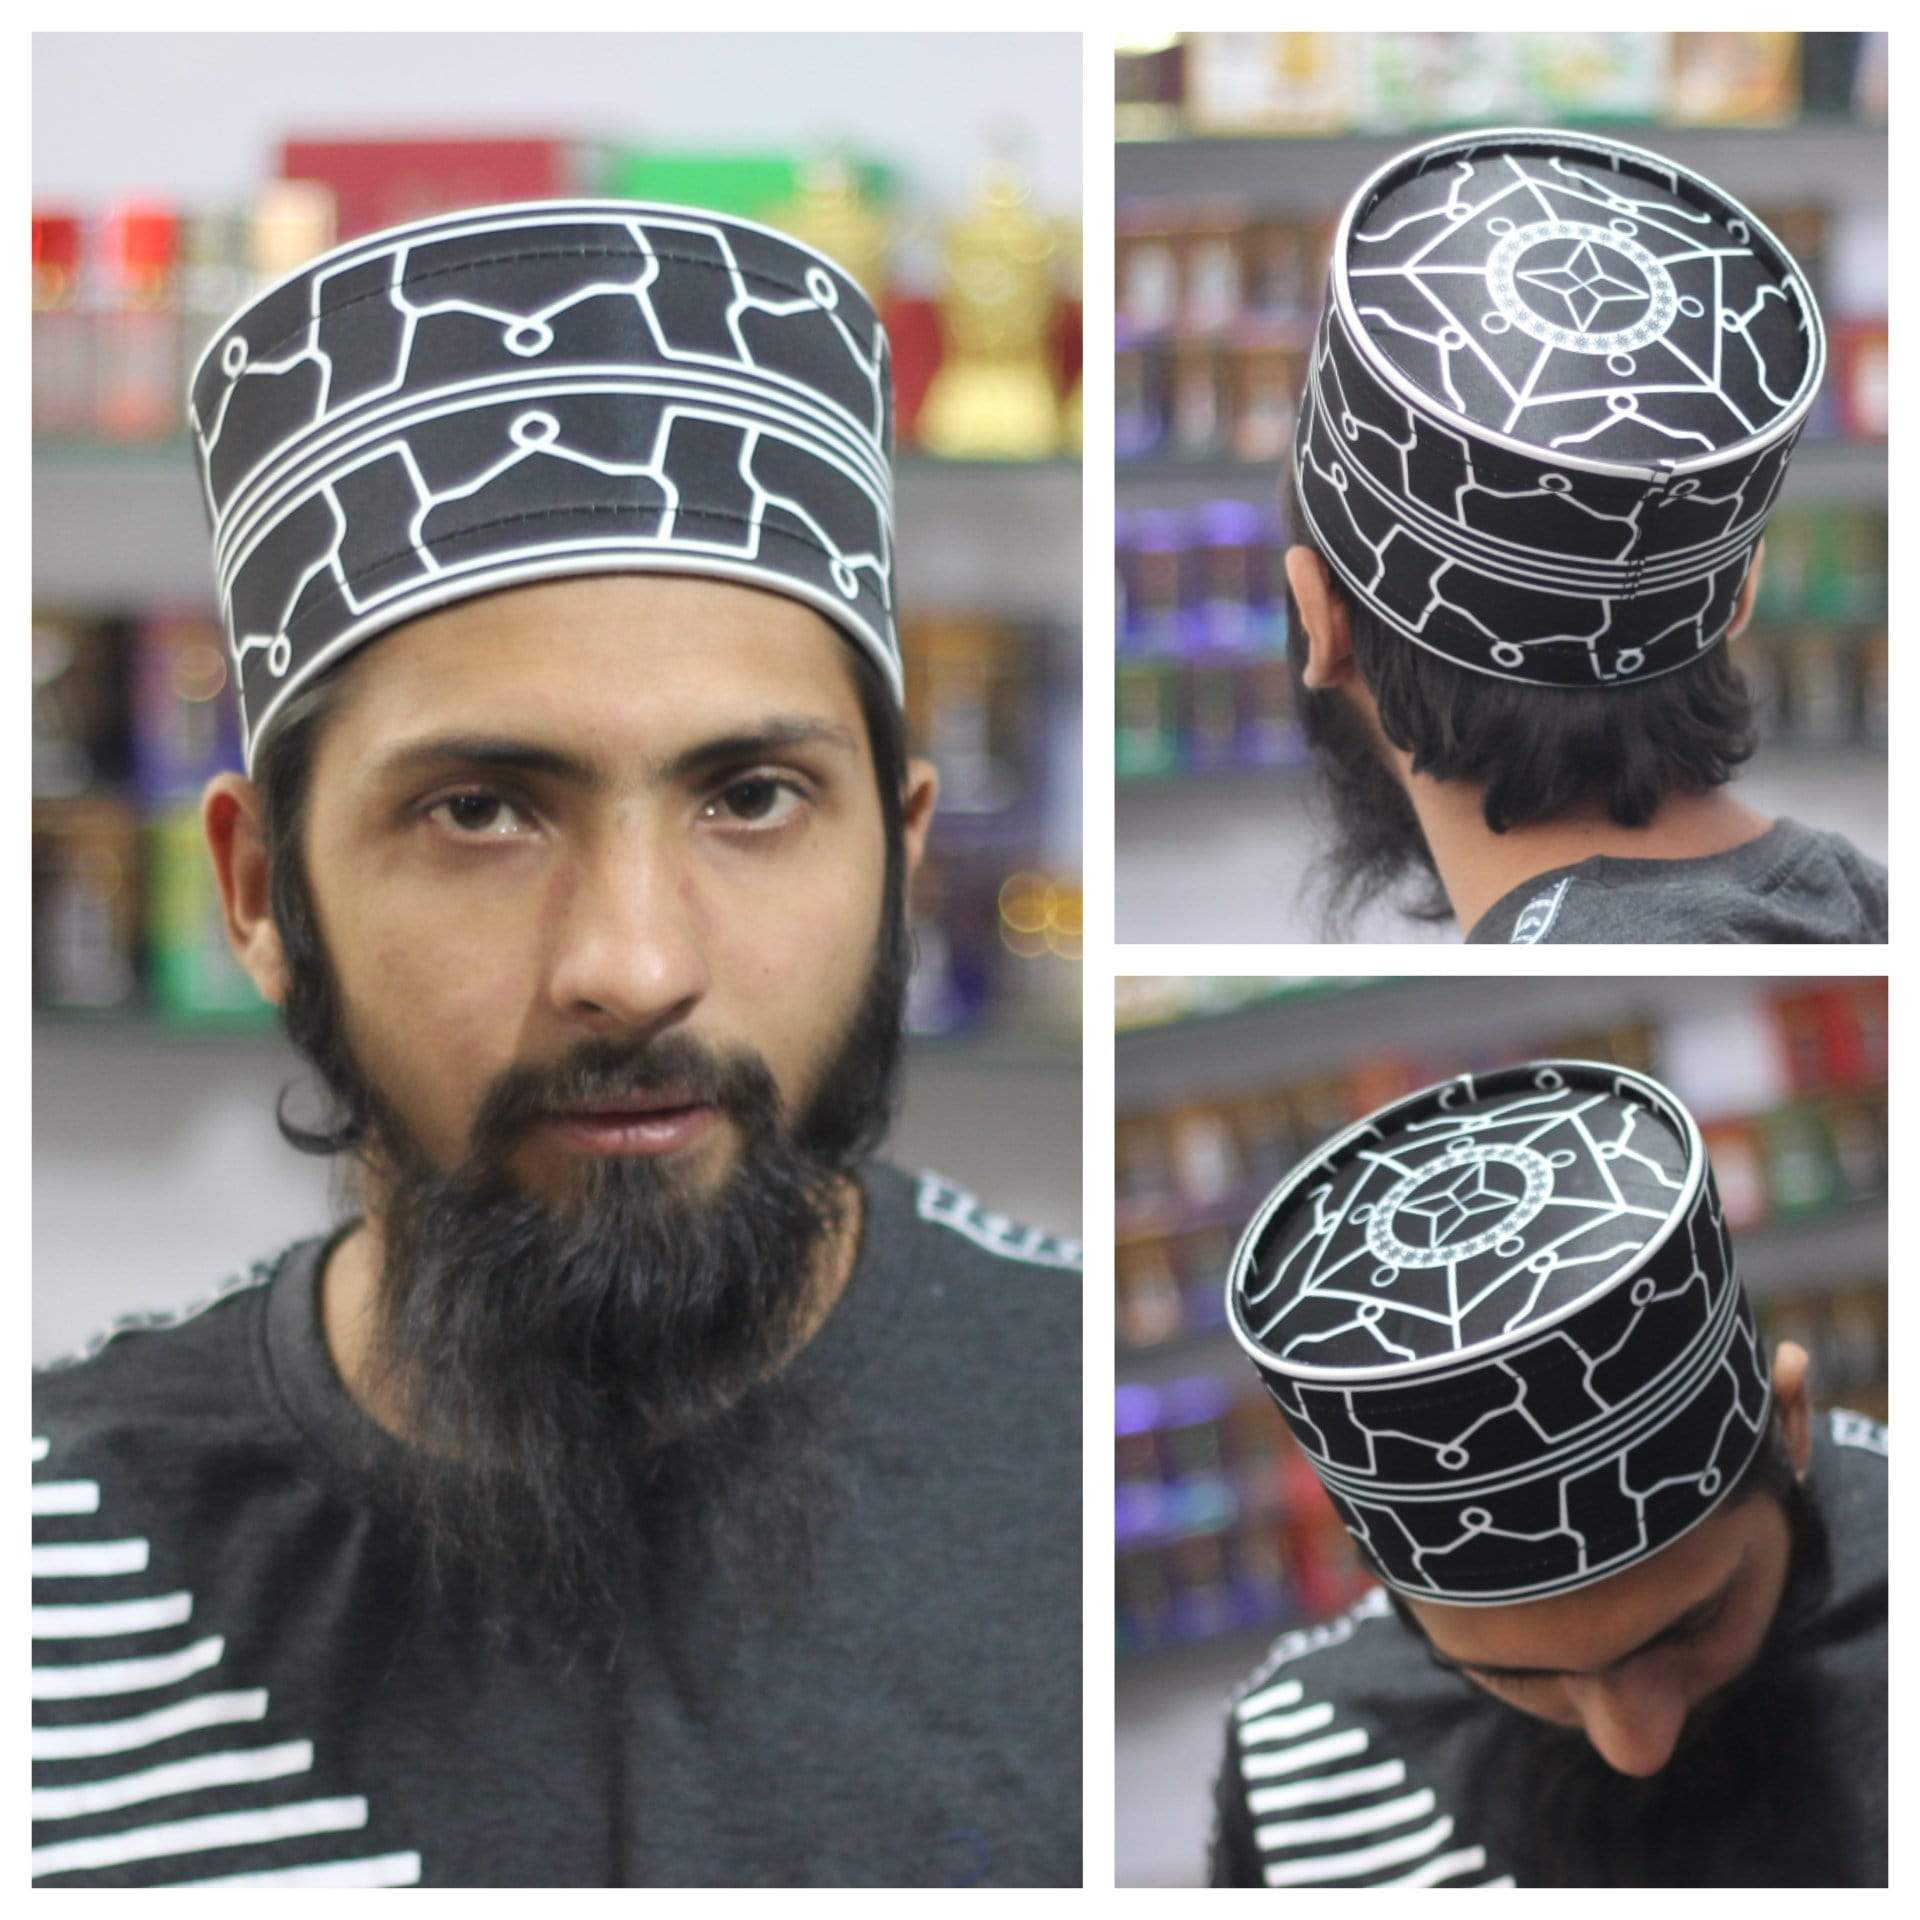 AdilQadri Daily Wear Series 2020 Dome Model Hand Made Stylish Designer Islamic Cap #AQCAP